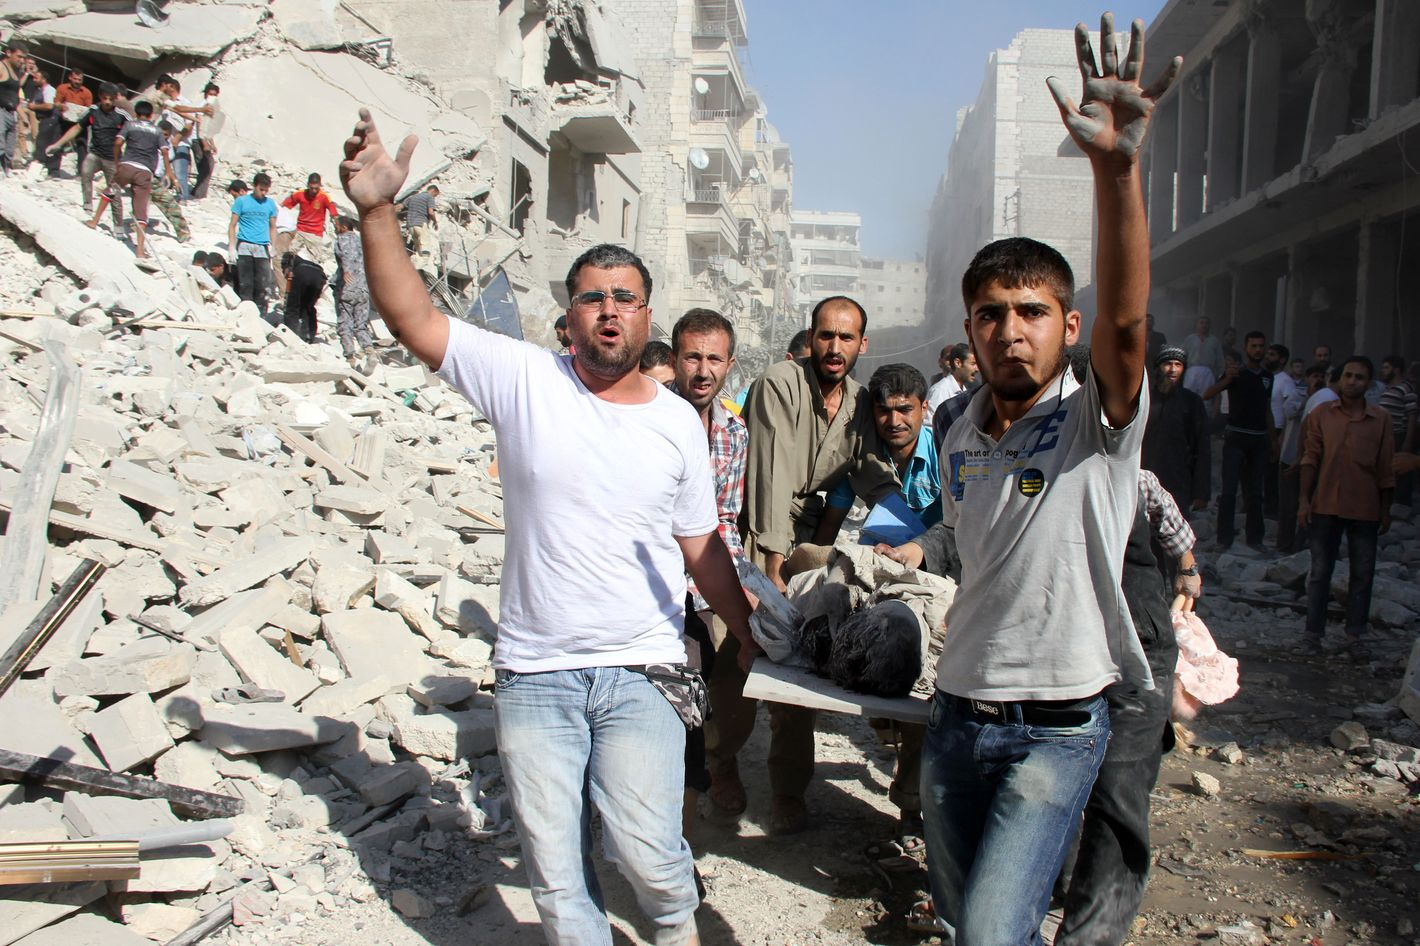 Syrian men evacuate a victim following an air strike by regime forces in the northern city of Aleppo on August 26, 2013. Syria's opposition accused pro-regime forces of opening fire at UN weapons inspectors on their way to a suspected chemical weapons site outside Damascus in a bid to hinder their investigation. AFP PHOTO/ABO AL-NUR SADK        (Photo credit should read ABO AL-NUR SADK/AFP/Getty Images)